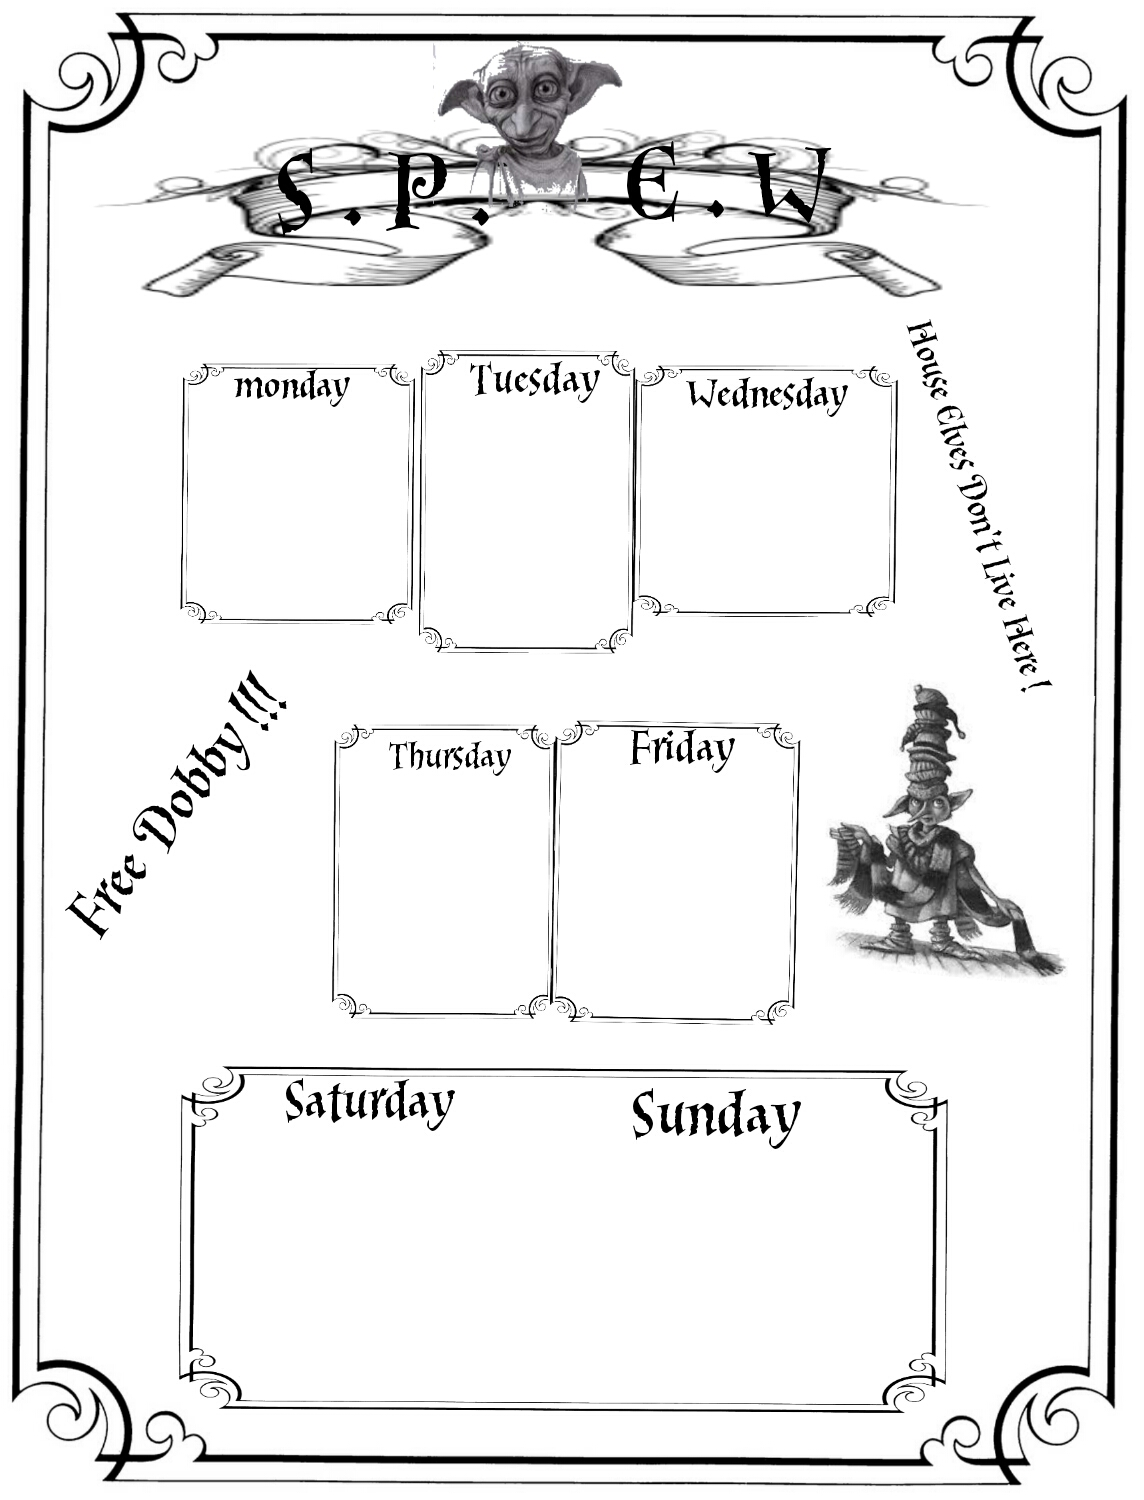 Harry Potter Planner Printables Free Lorraine A Life Less Ordinary